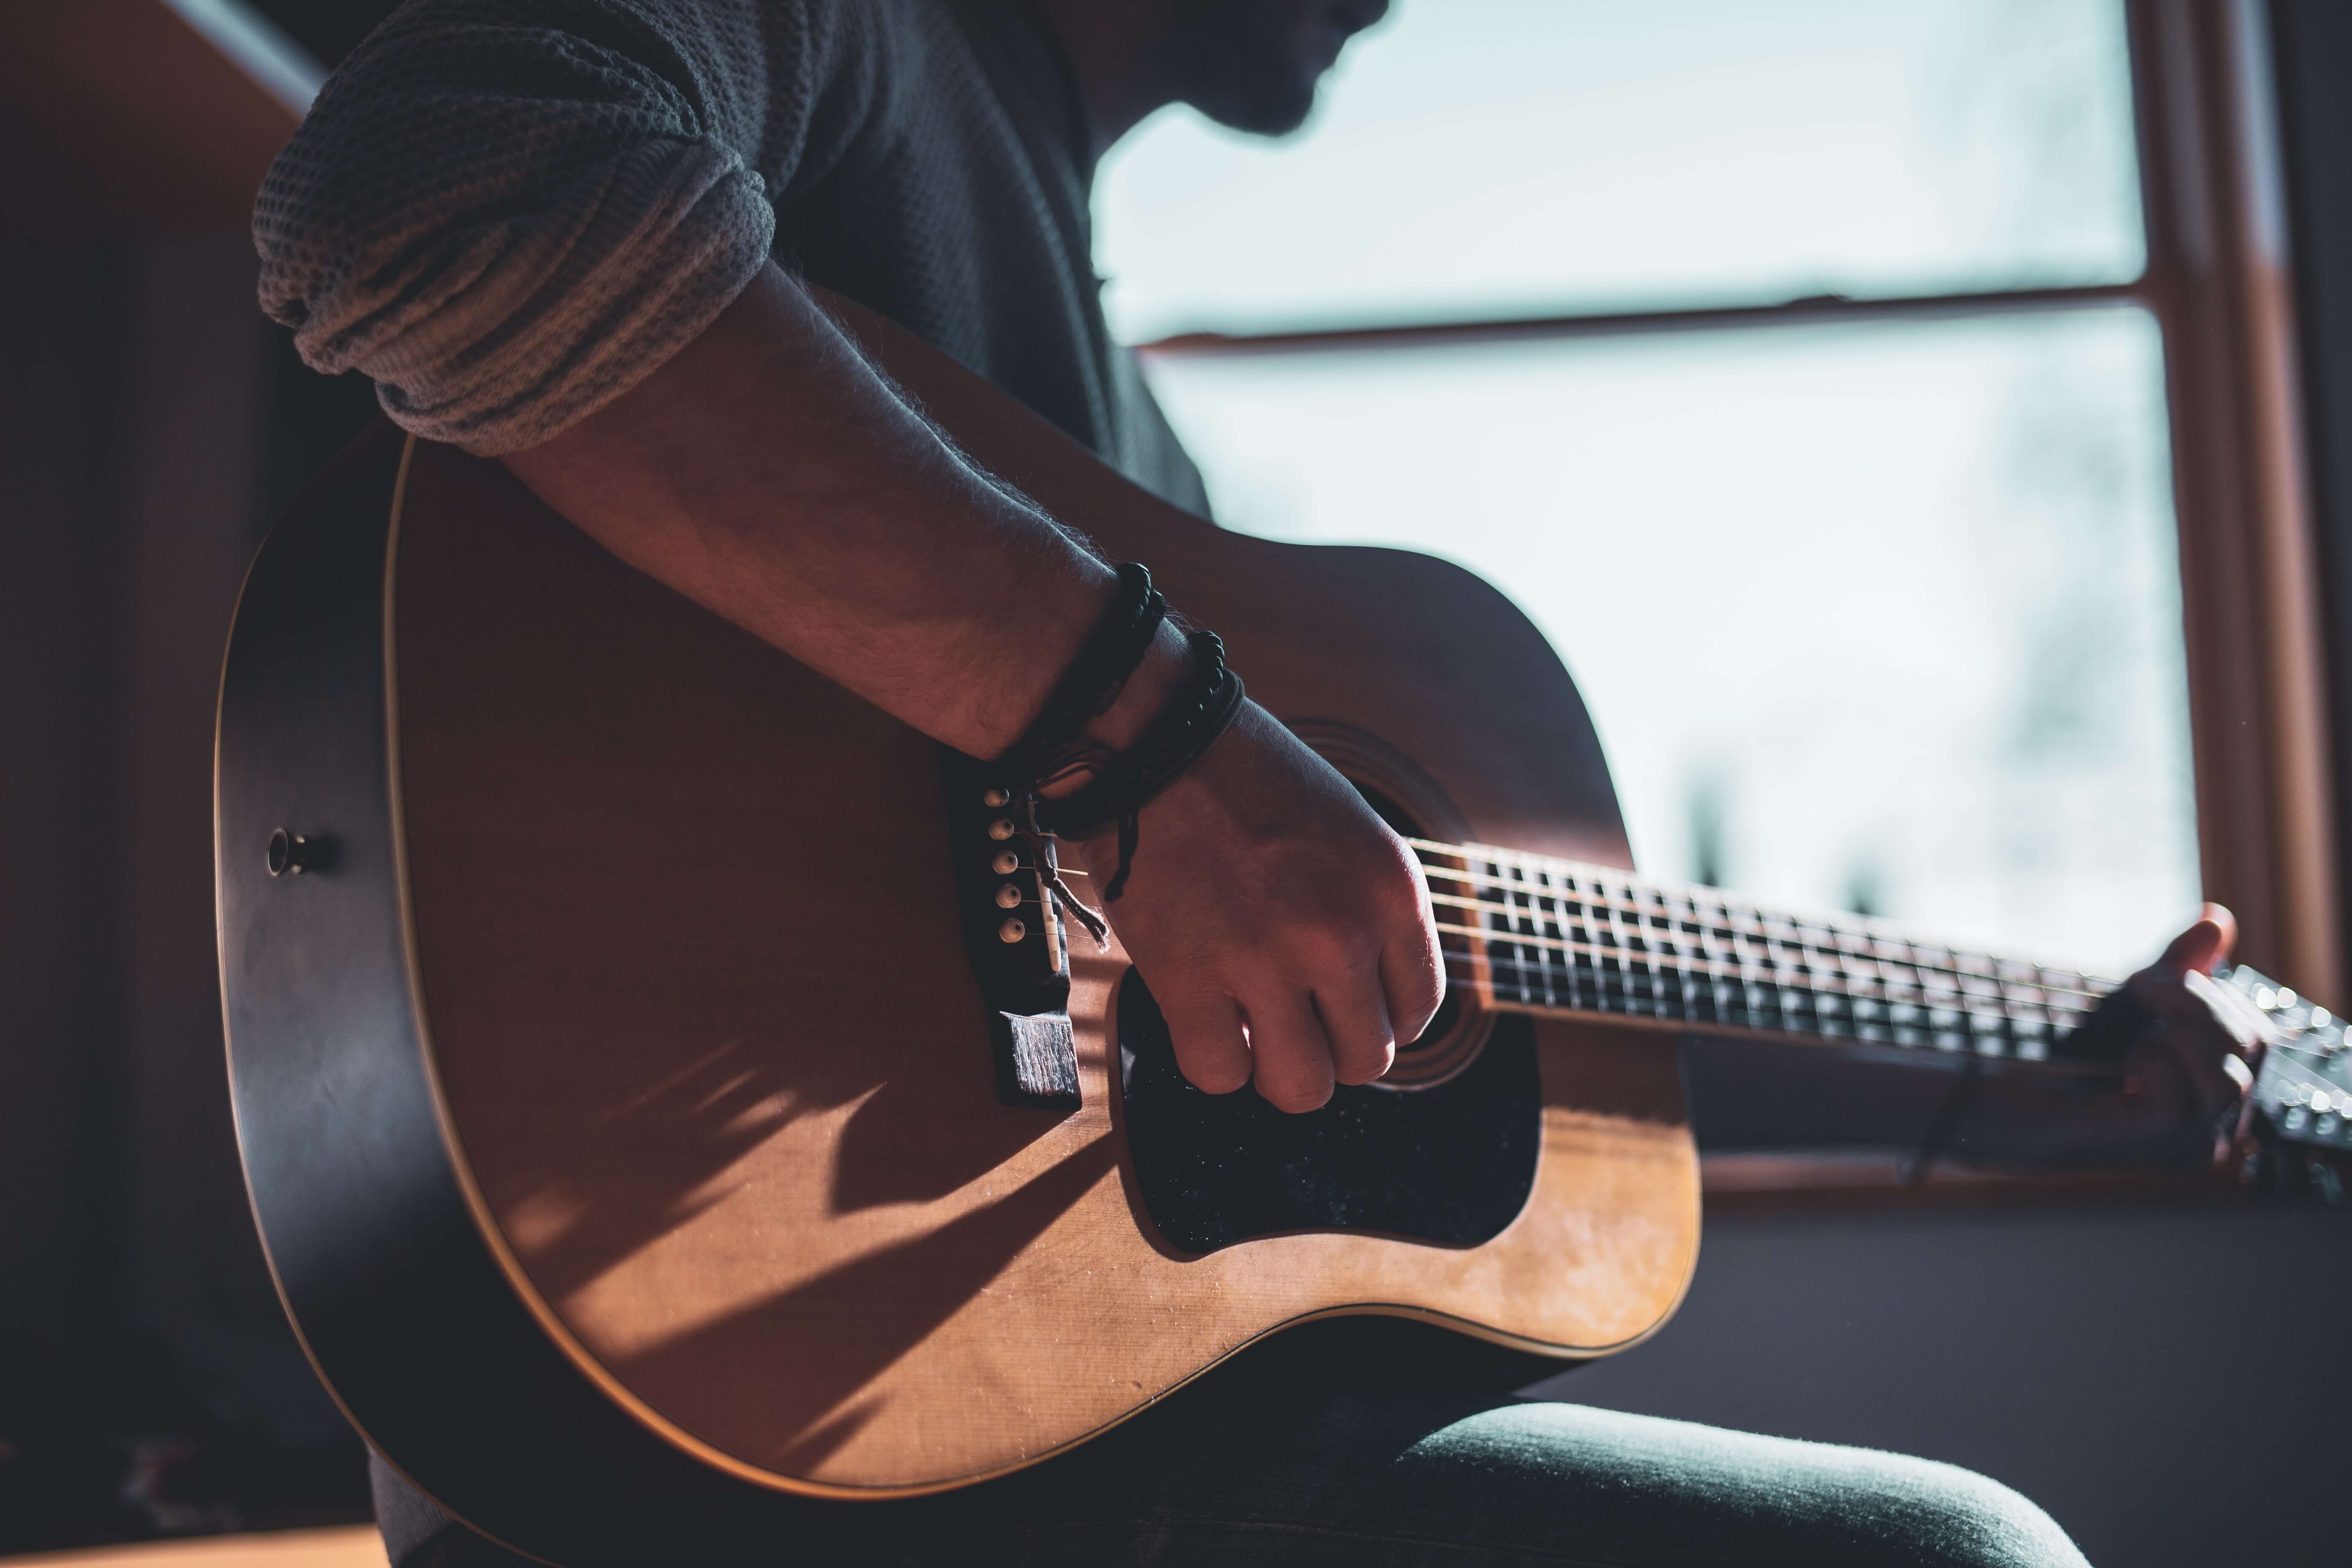 Celebration of life ideas - Guitar